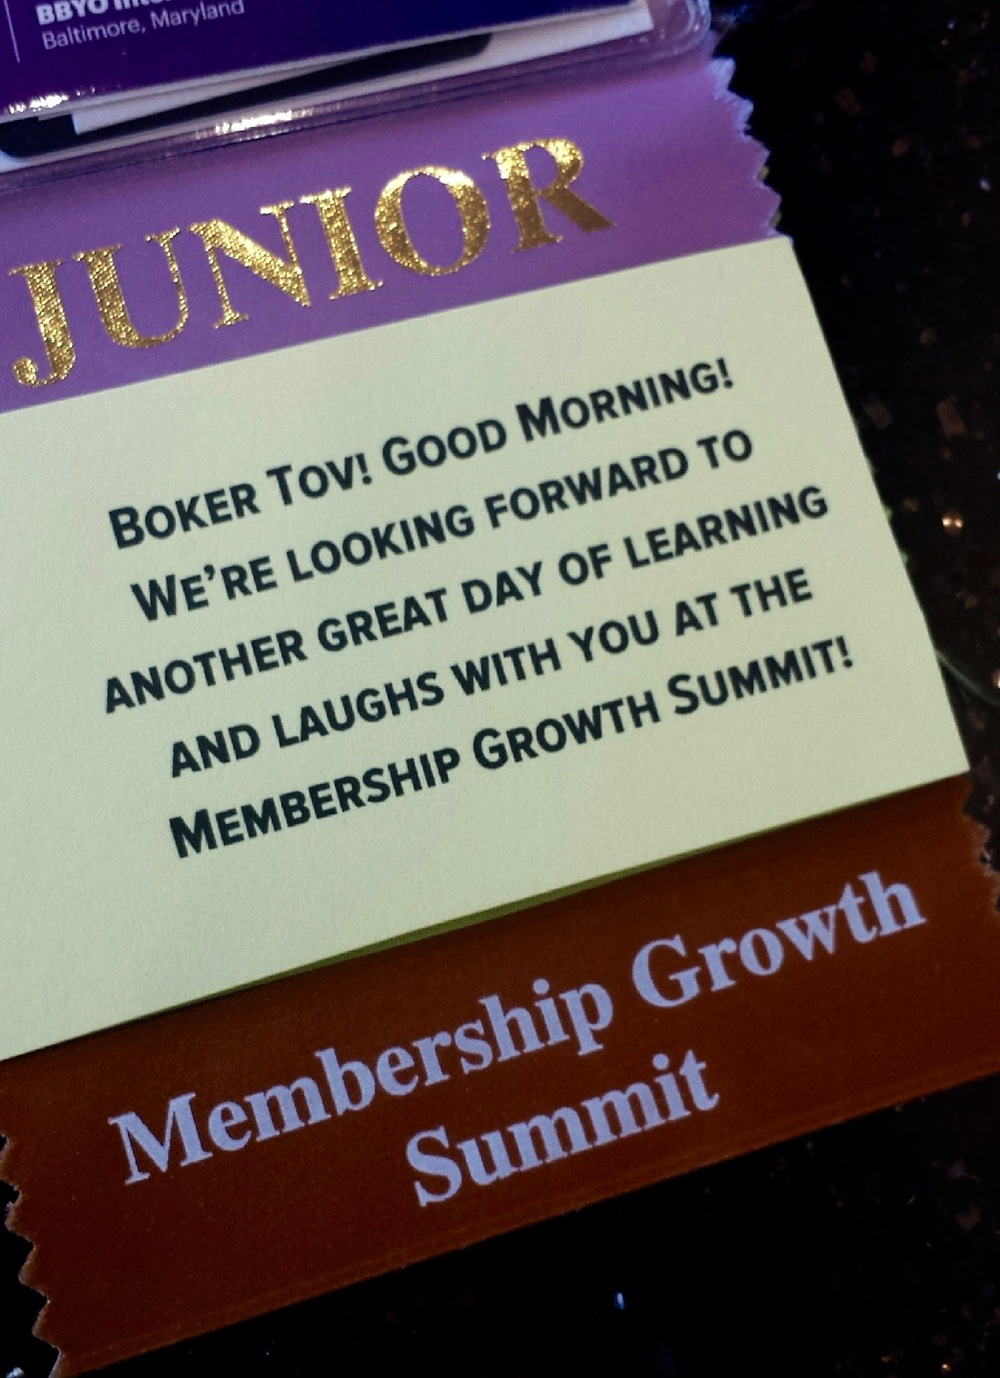 The Membership Growth Summit taught participants how to develop recruitment plans and grow BBYO.